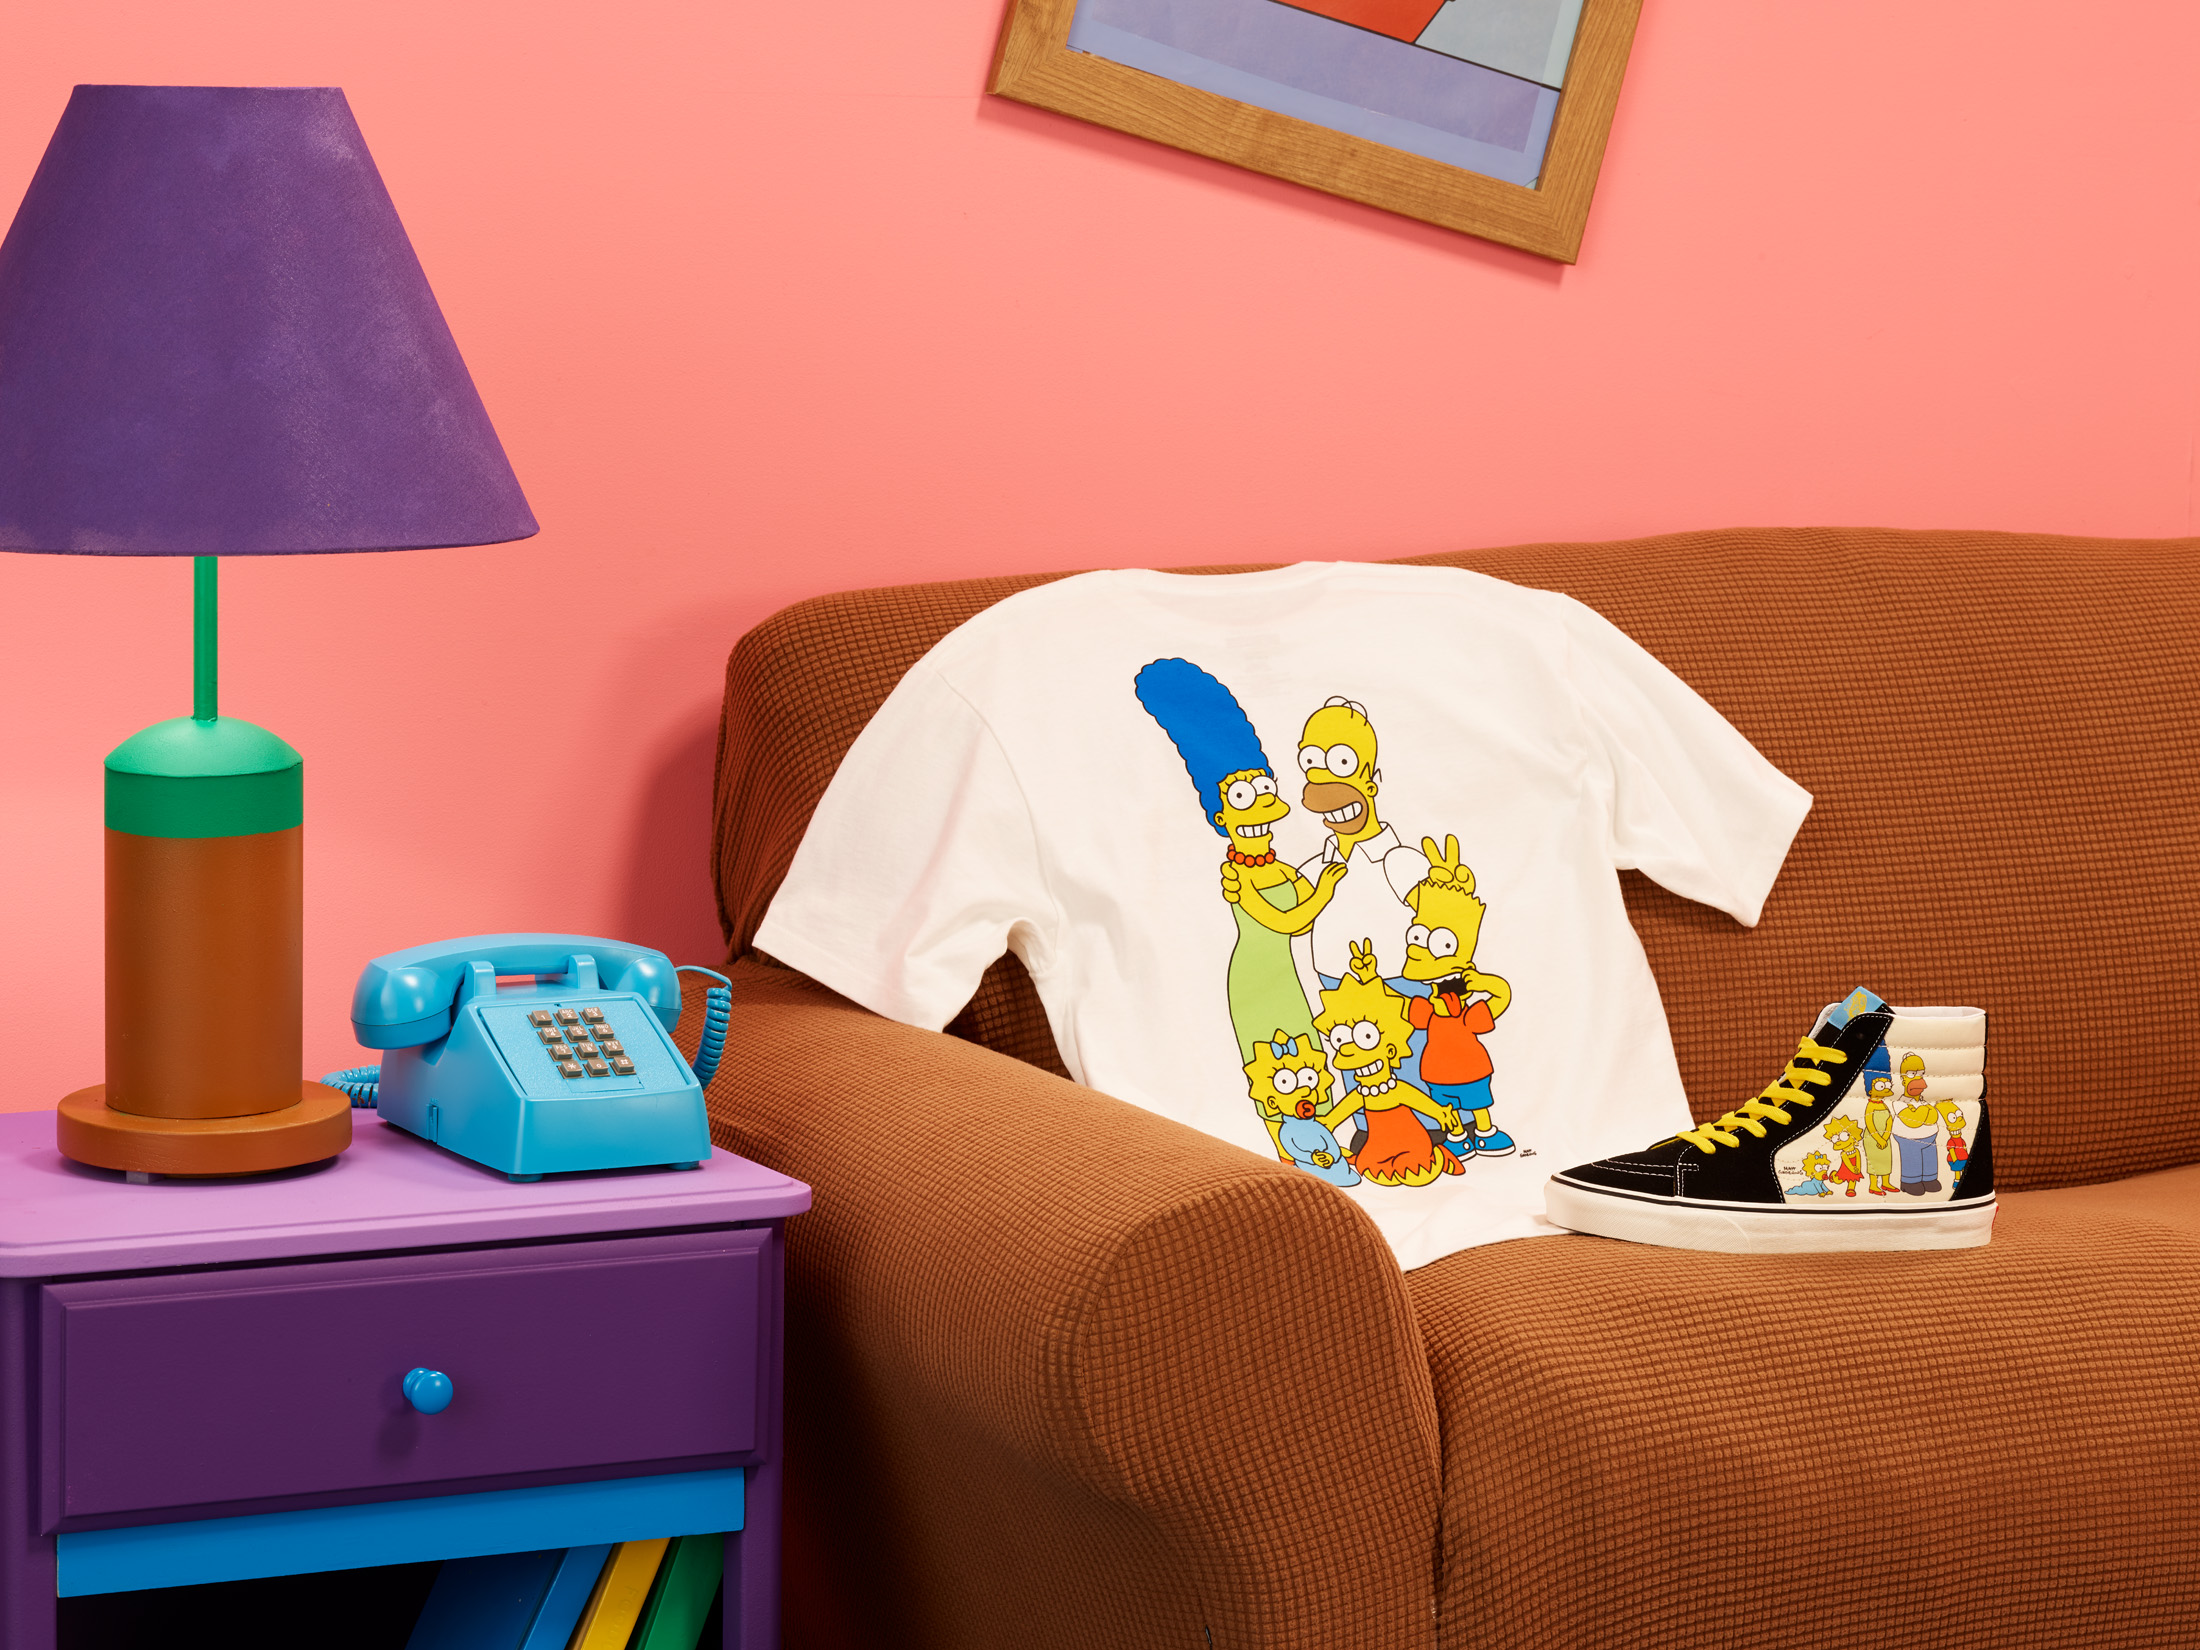 FA20_Lifestyle_VansXTheSimpsons_Lineup_Elevated_0187